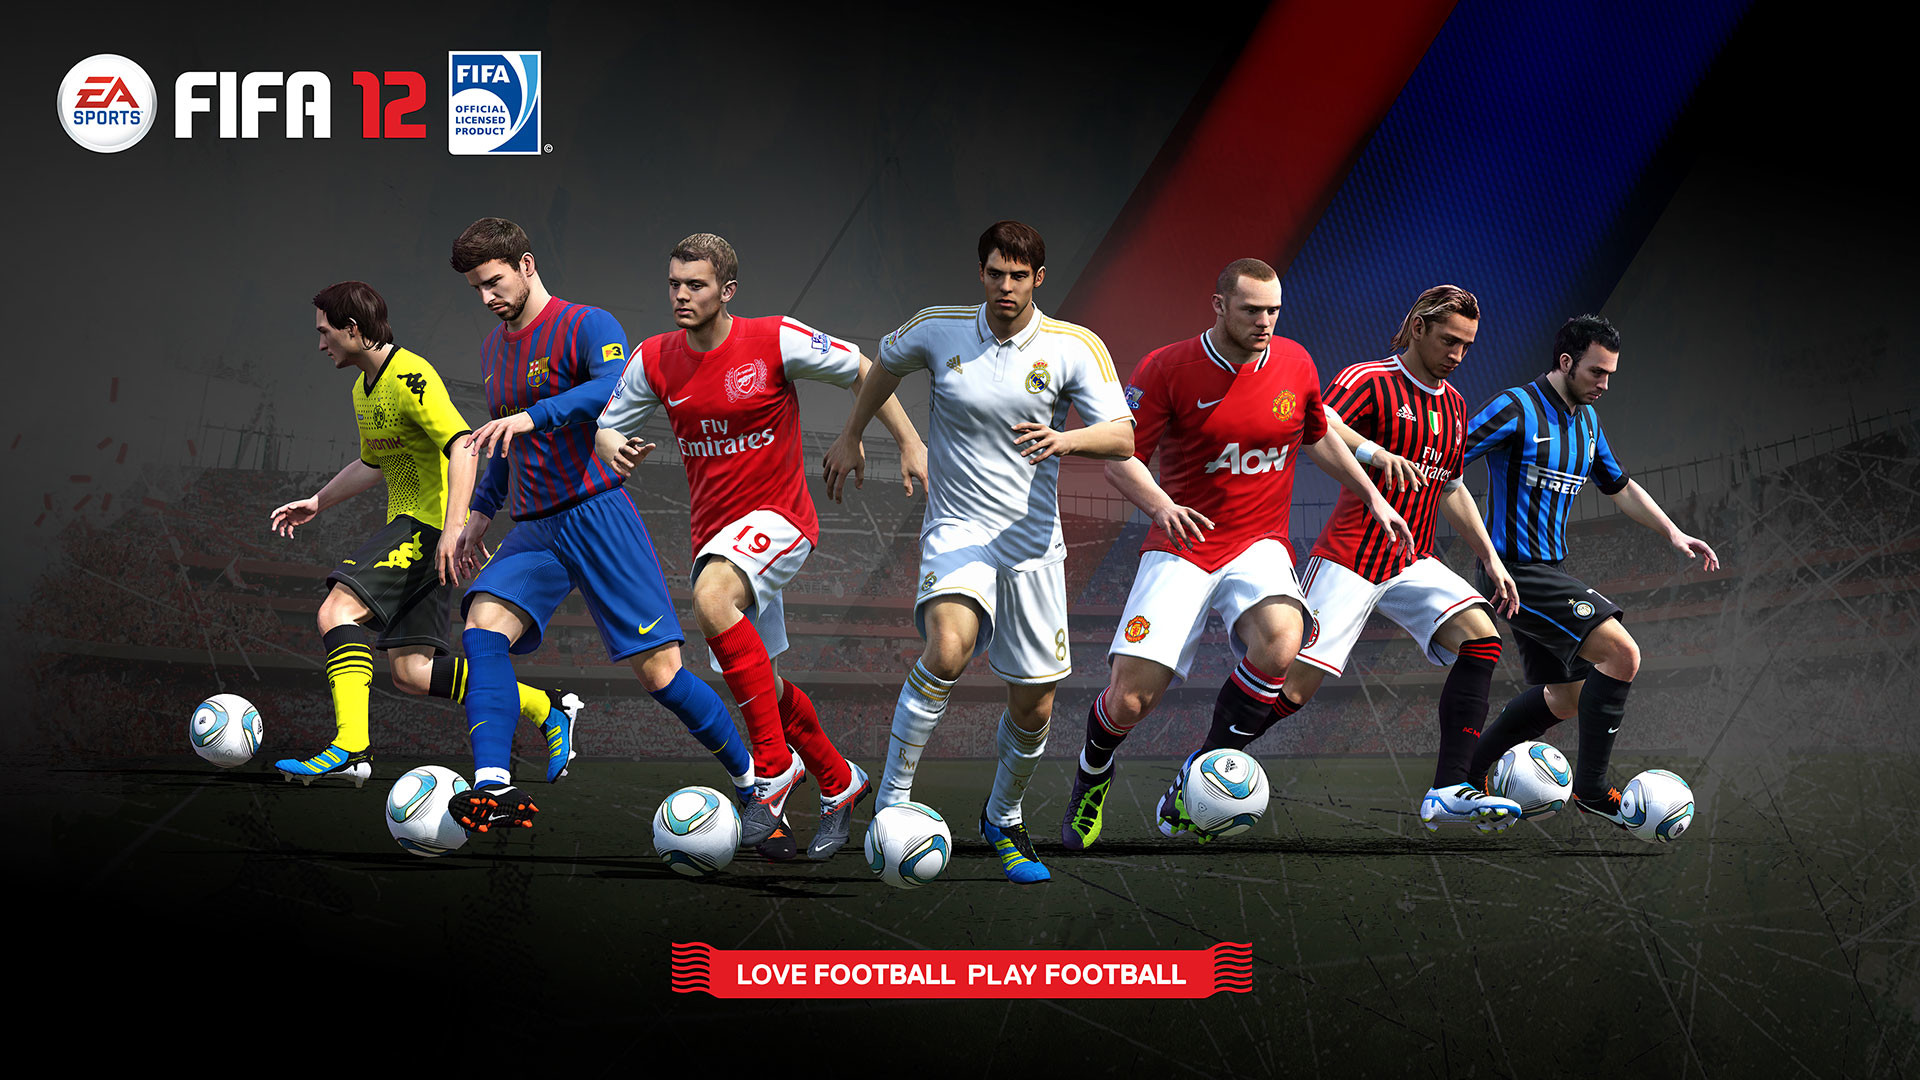 Res: 1920x1080, FIFA 12 HD Wallpaper   Background Image      ID:634347 - Wallpaper  Abyss